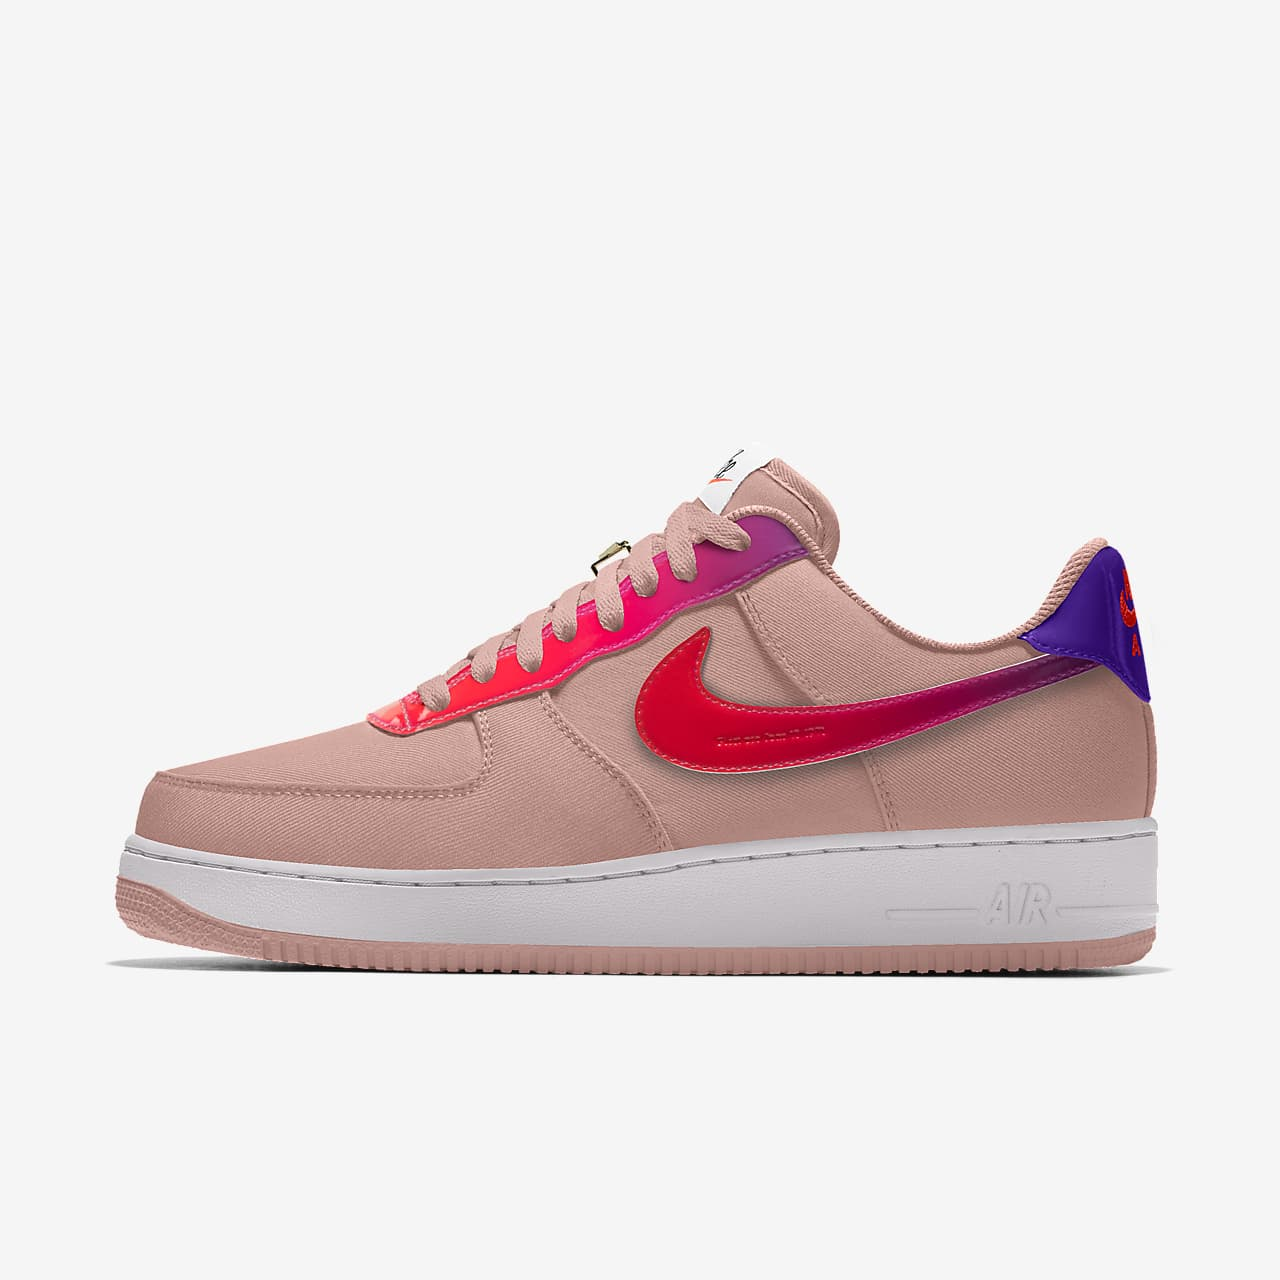 Chaussure personnalisable Nike Air Force 1 Low Unlocked pour Femme ...